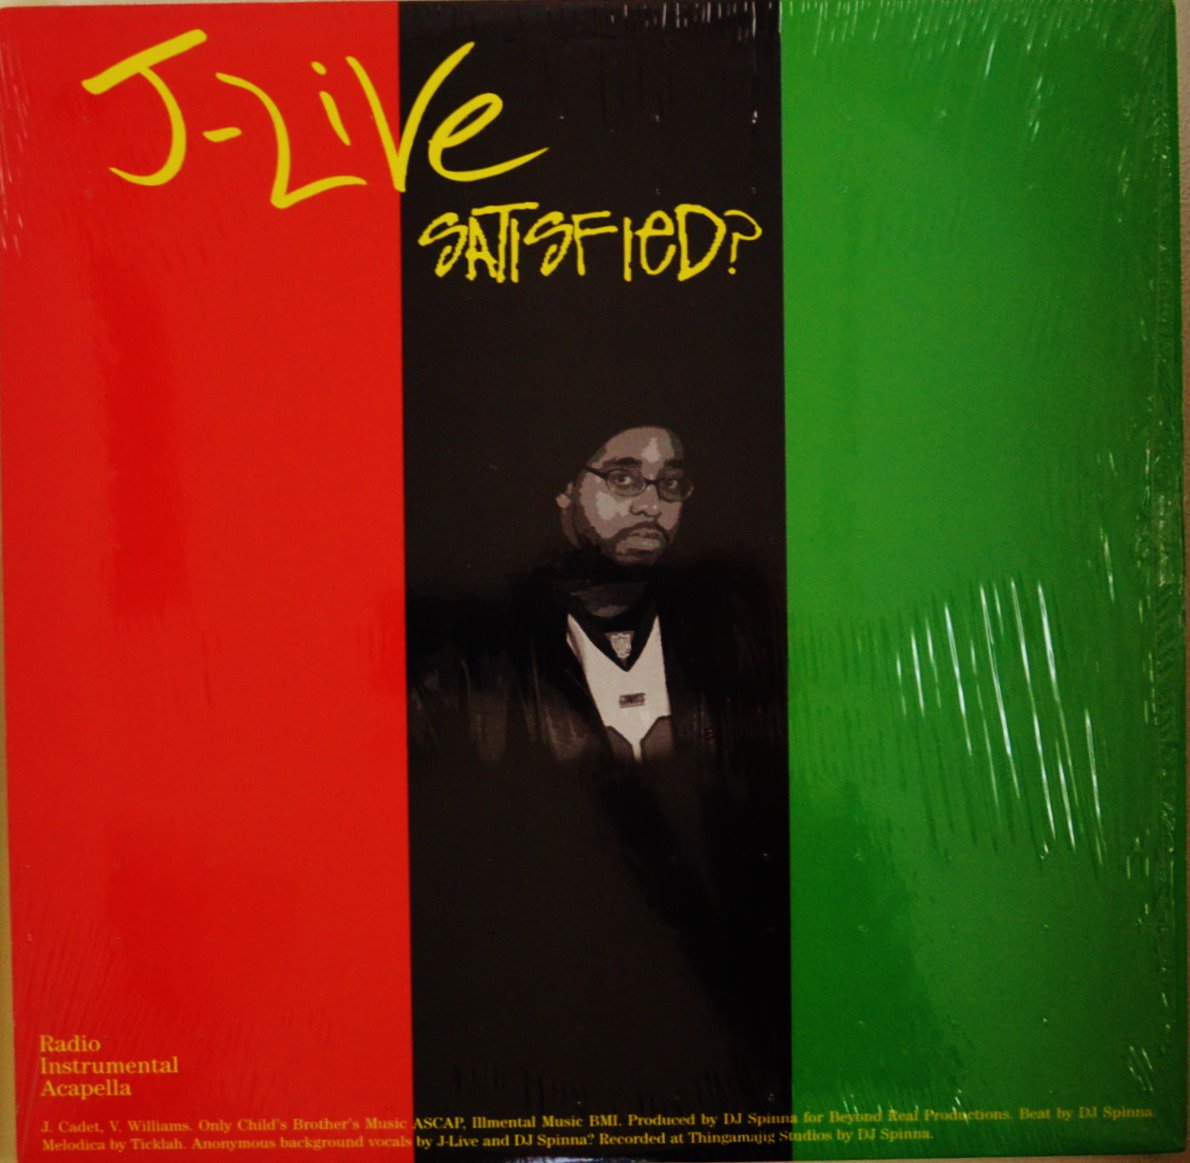 J-LIVE / SATISFIED? / A CHARMED LIFE (12